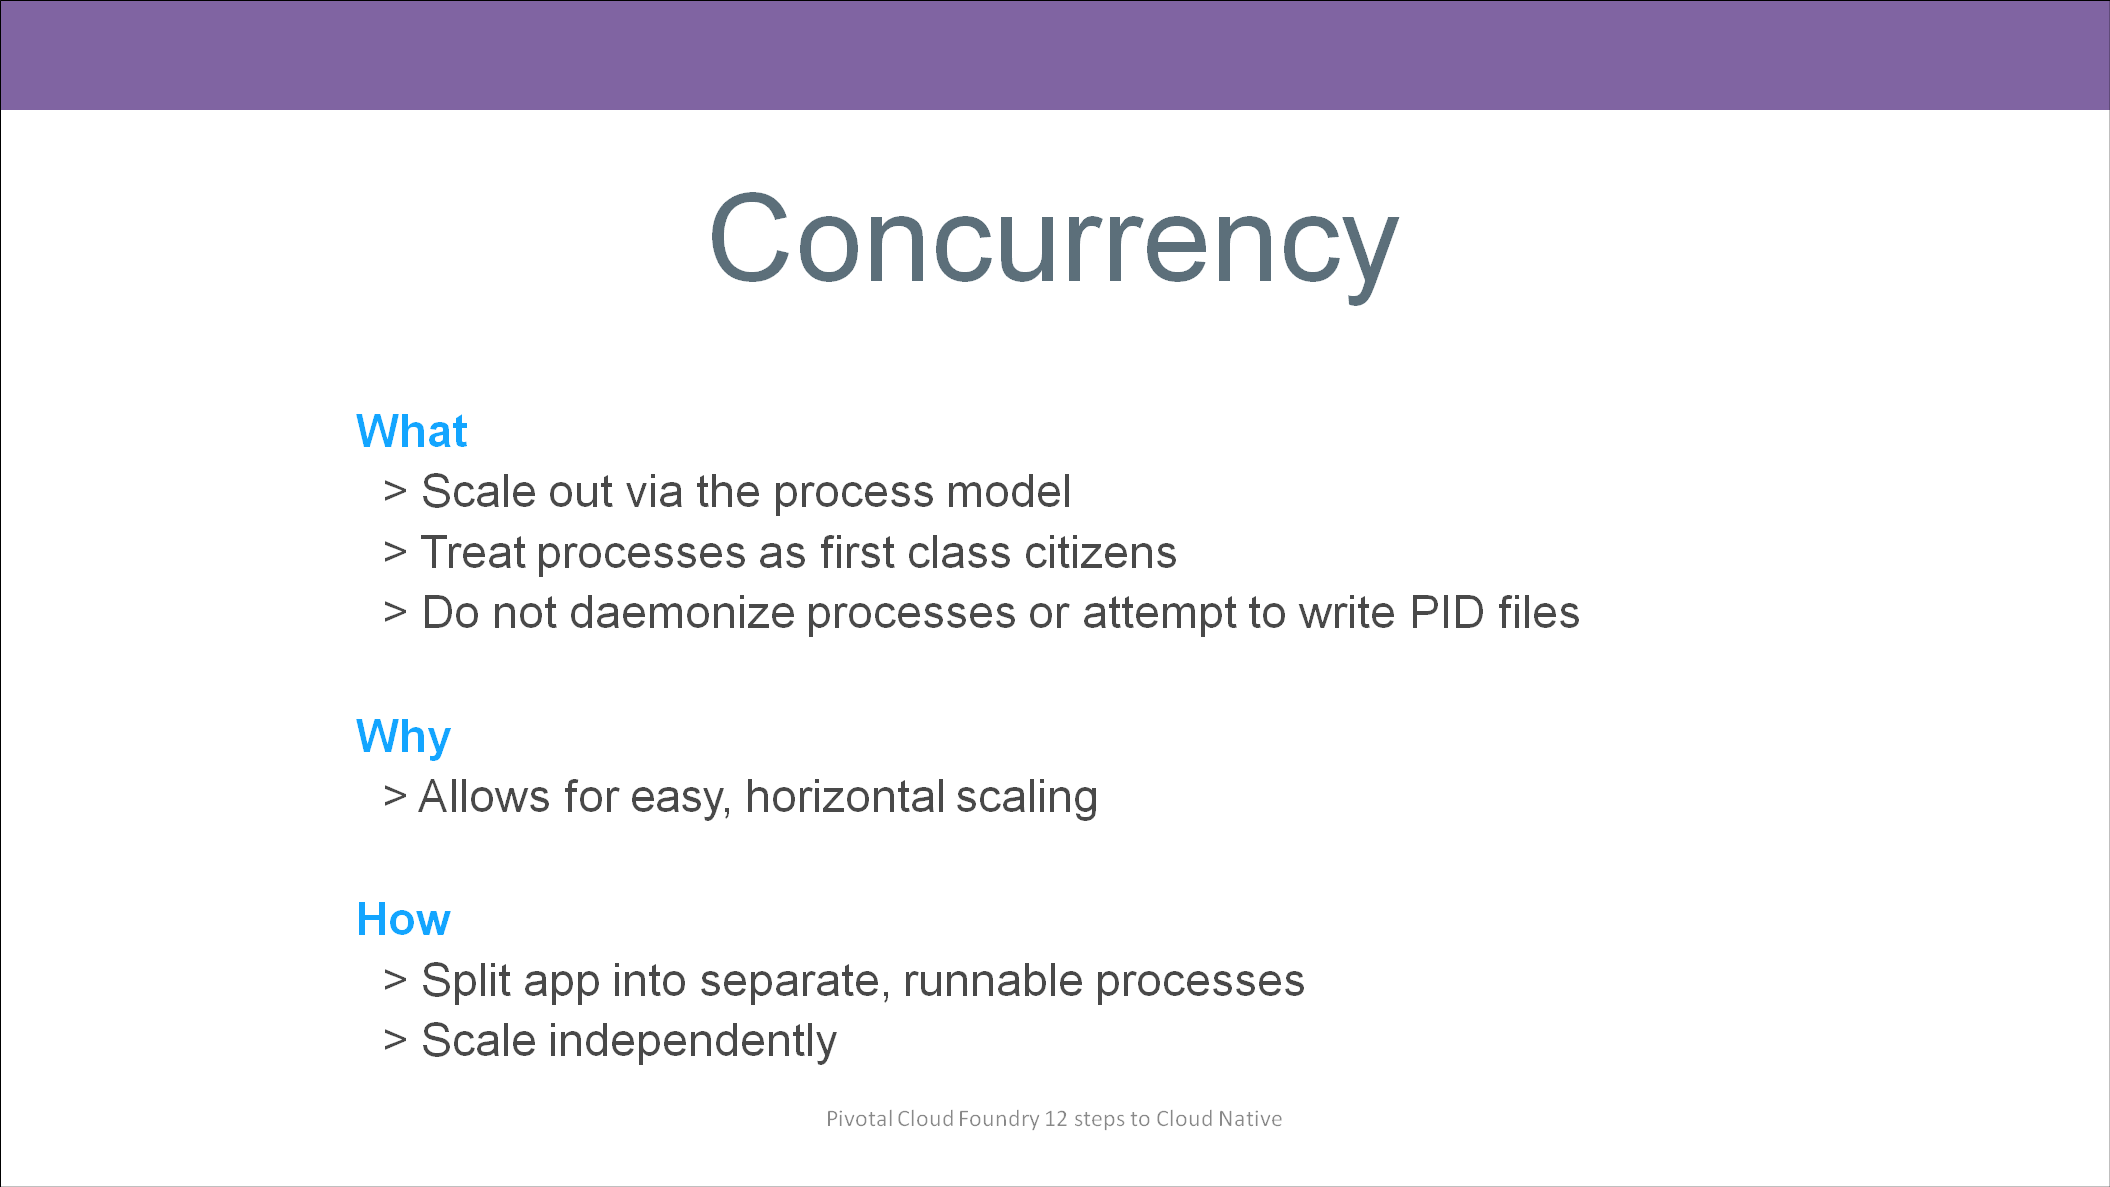 12 Factors to build Cloud Native Applications - Concurrency